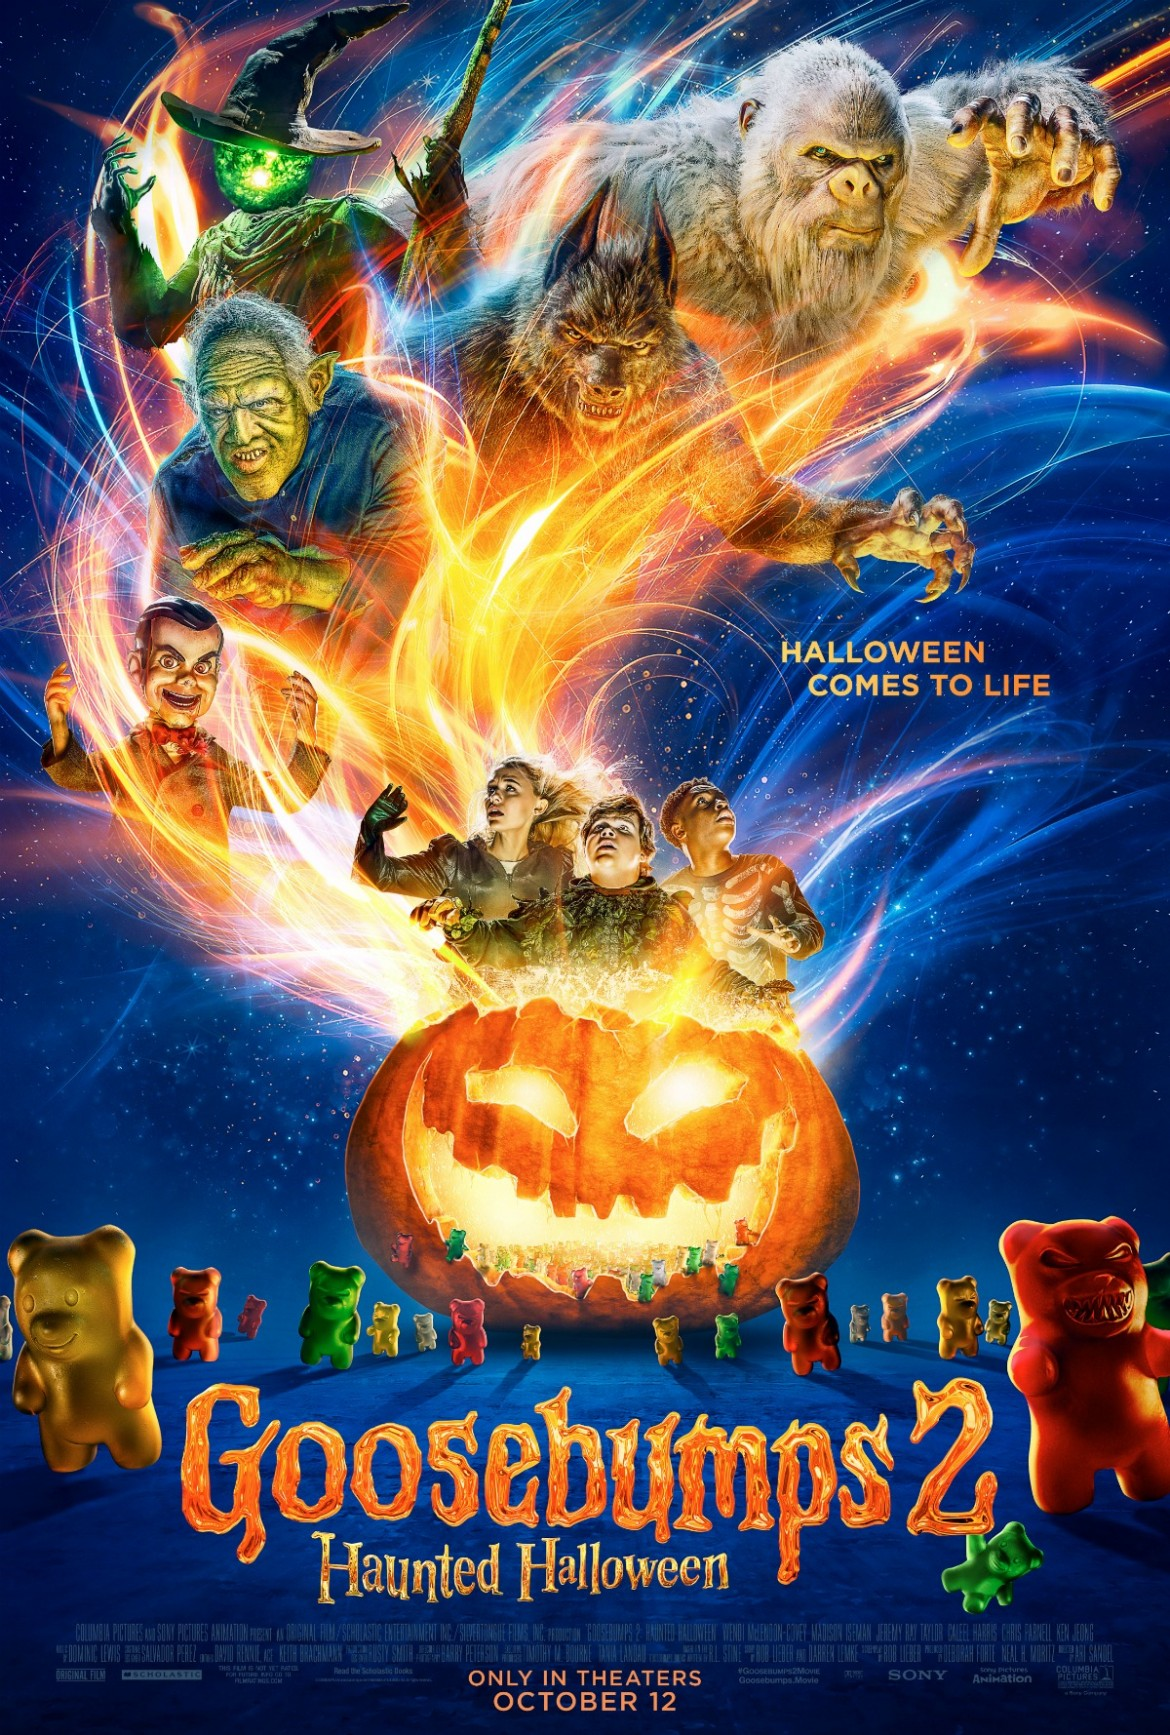 goosebumps-2-haunted-halloween-sony-epk-GB2_OnLine_FNL_1SHT_6072x9000_01-4_rgb-3